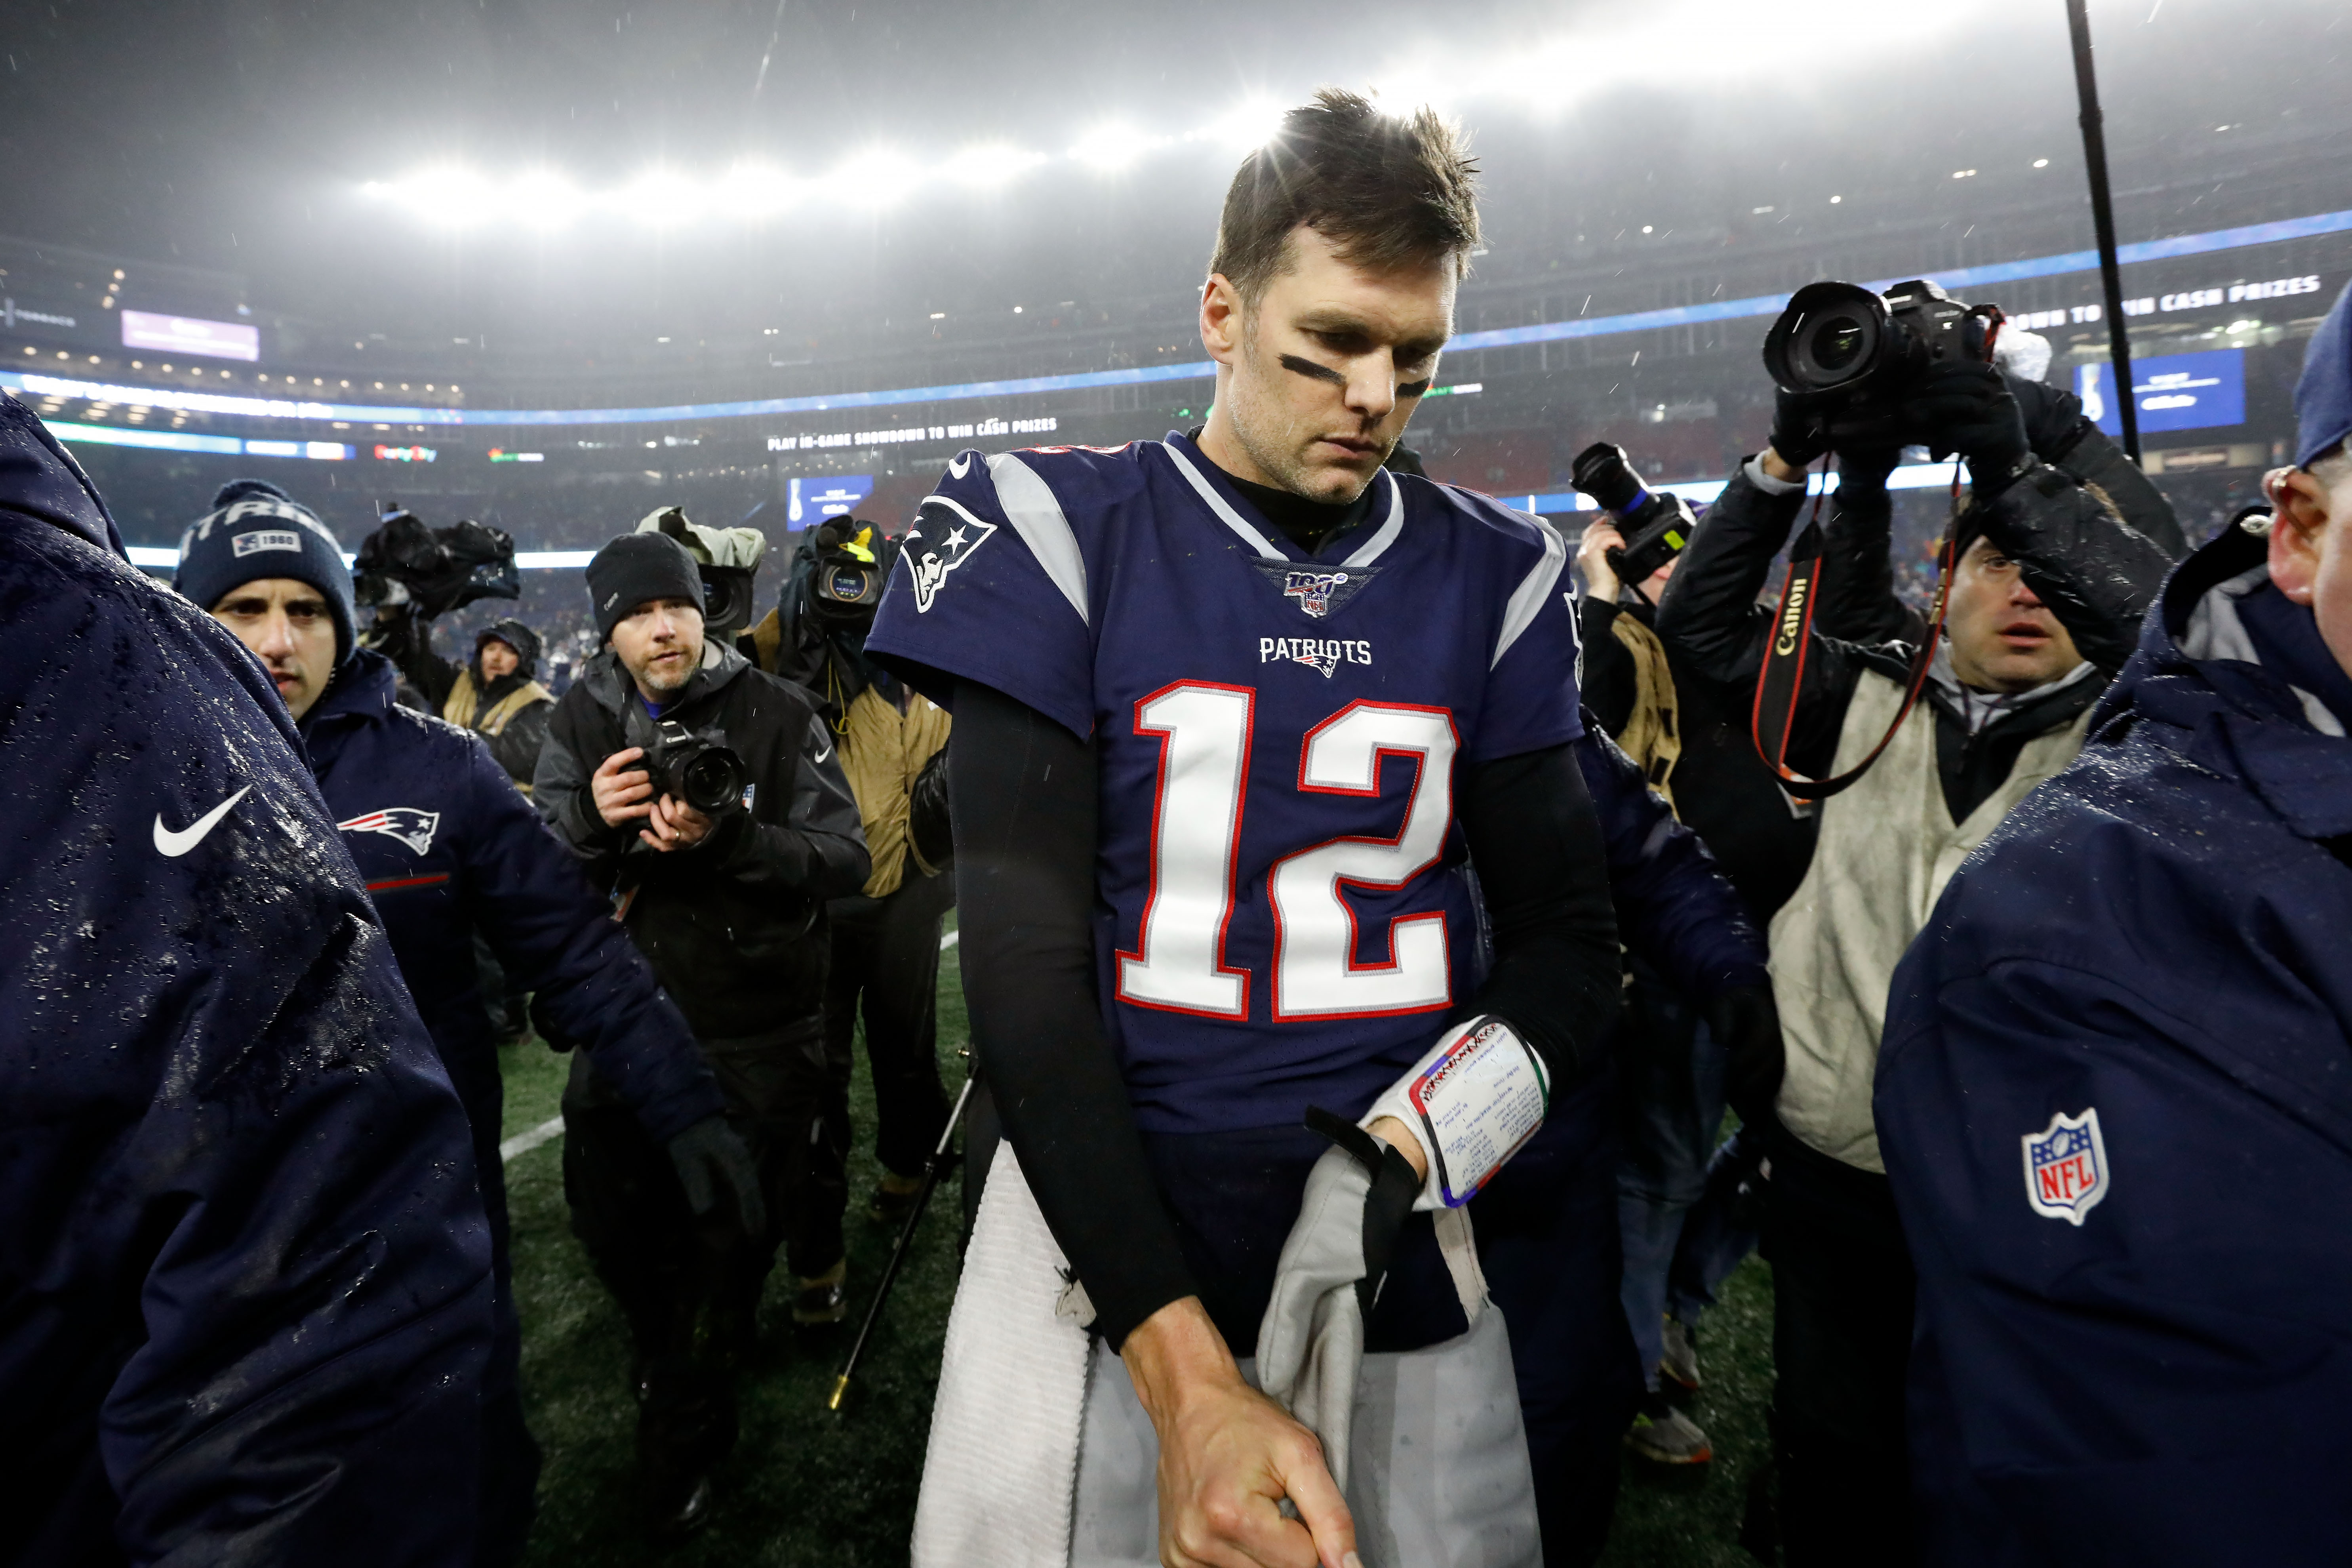 Report: Tom Brady 'Prepared' to Meet With Other Teams During Free Agency